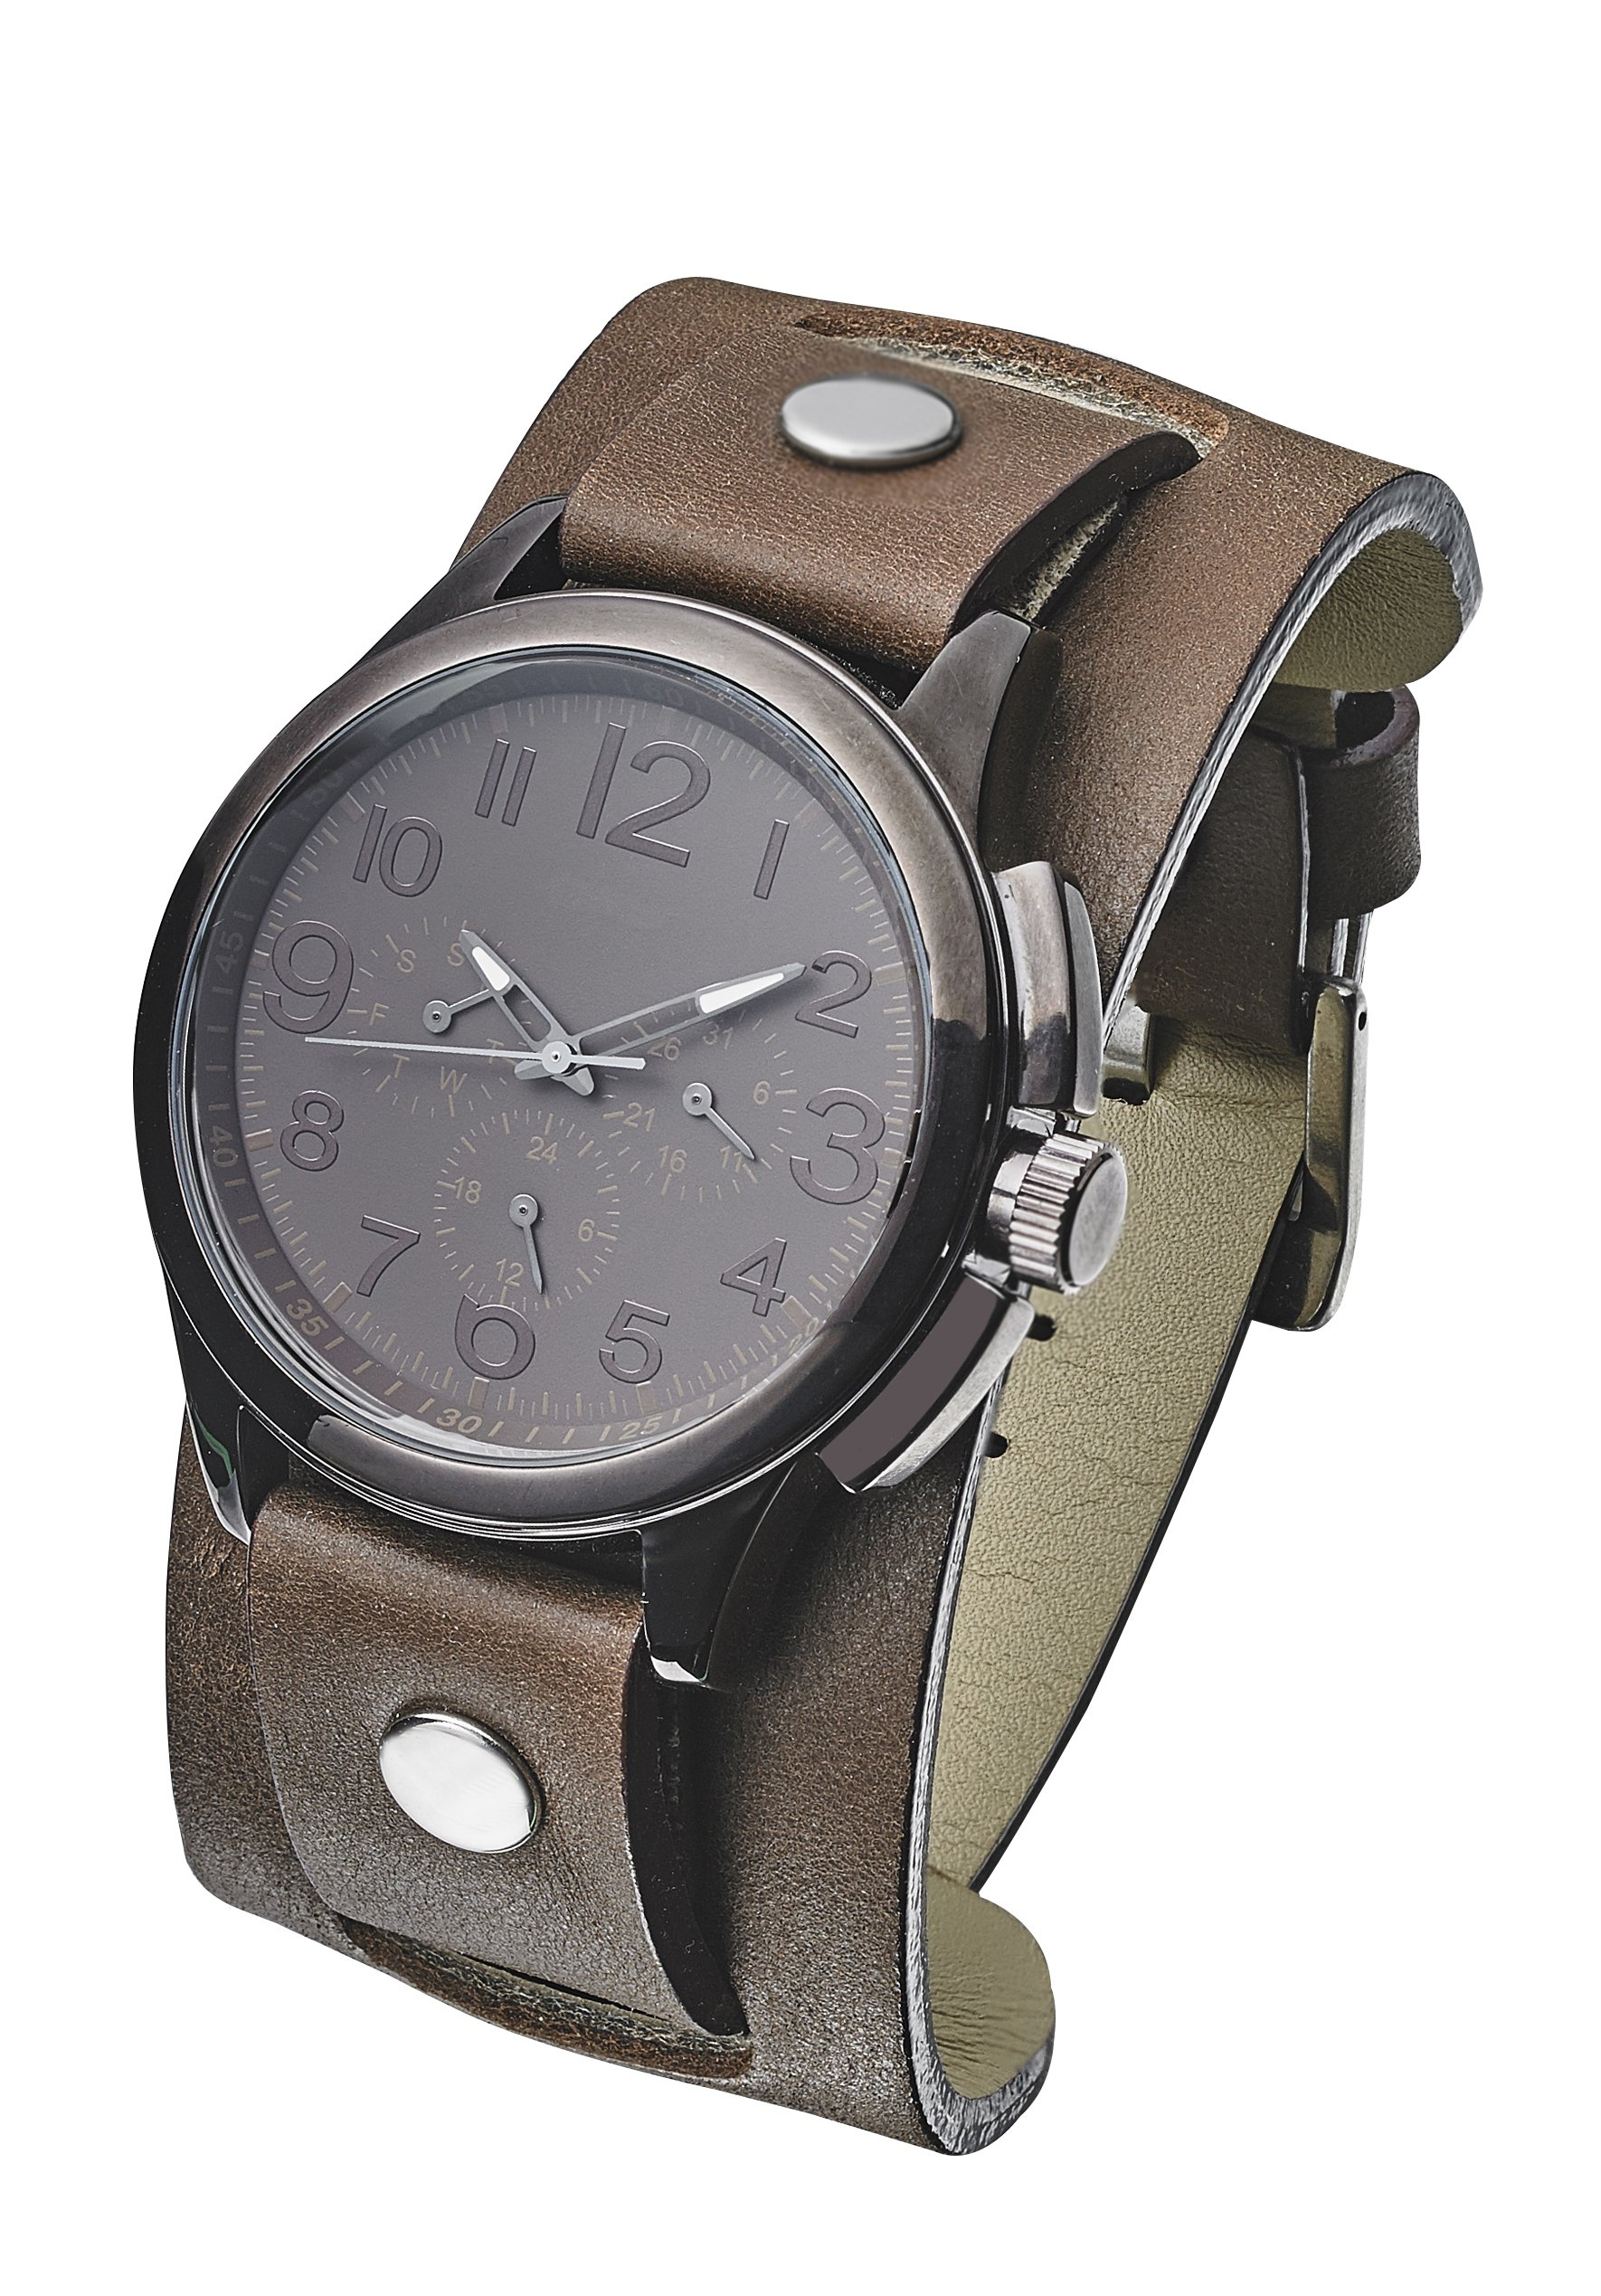 Thick Genuine Leather Cuff Watch Band - Brown- 24mm (fits wrist sizes 6 1/4 to 8 inch)